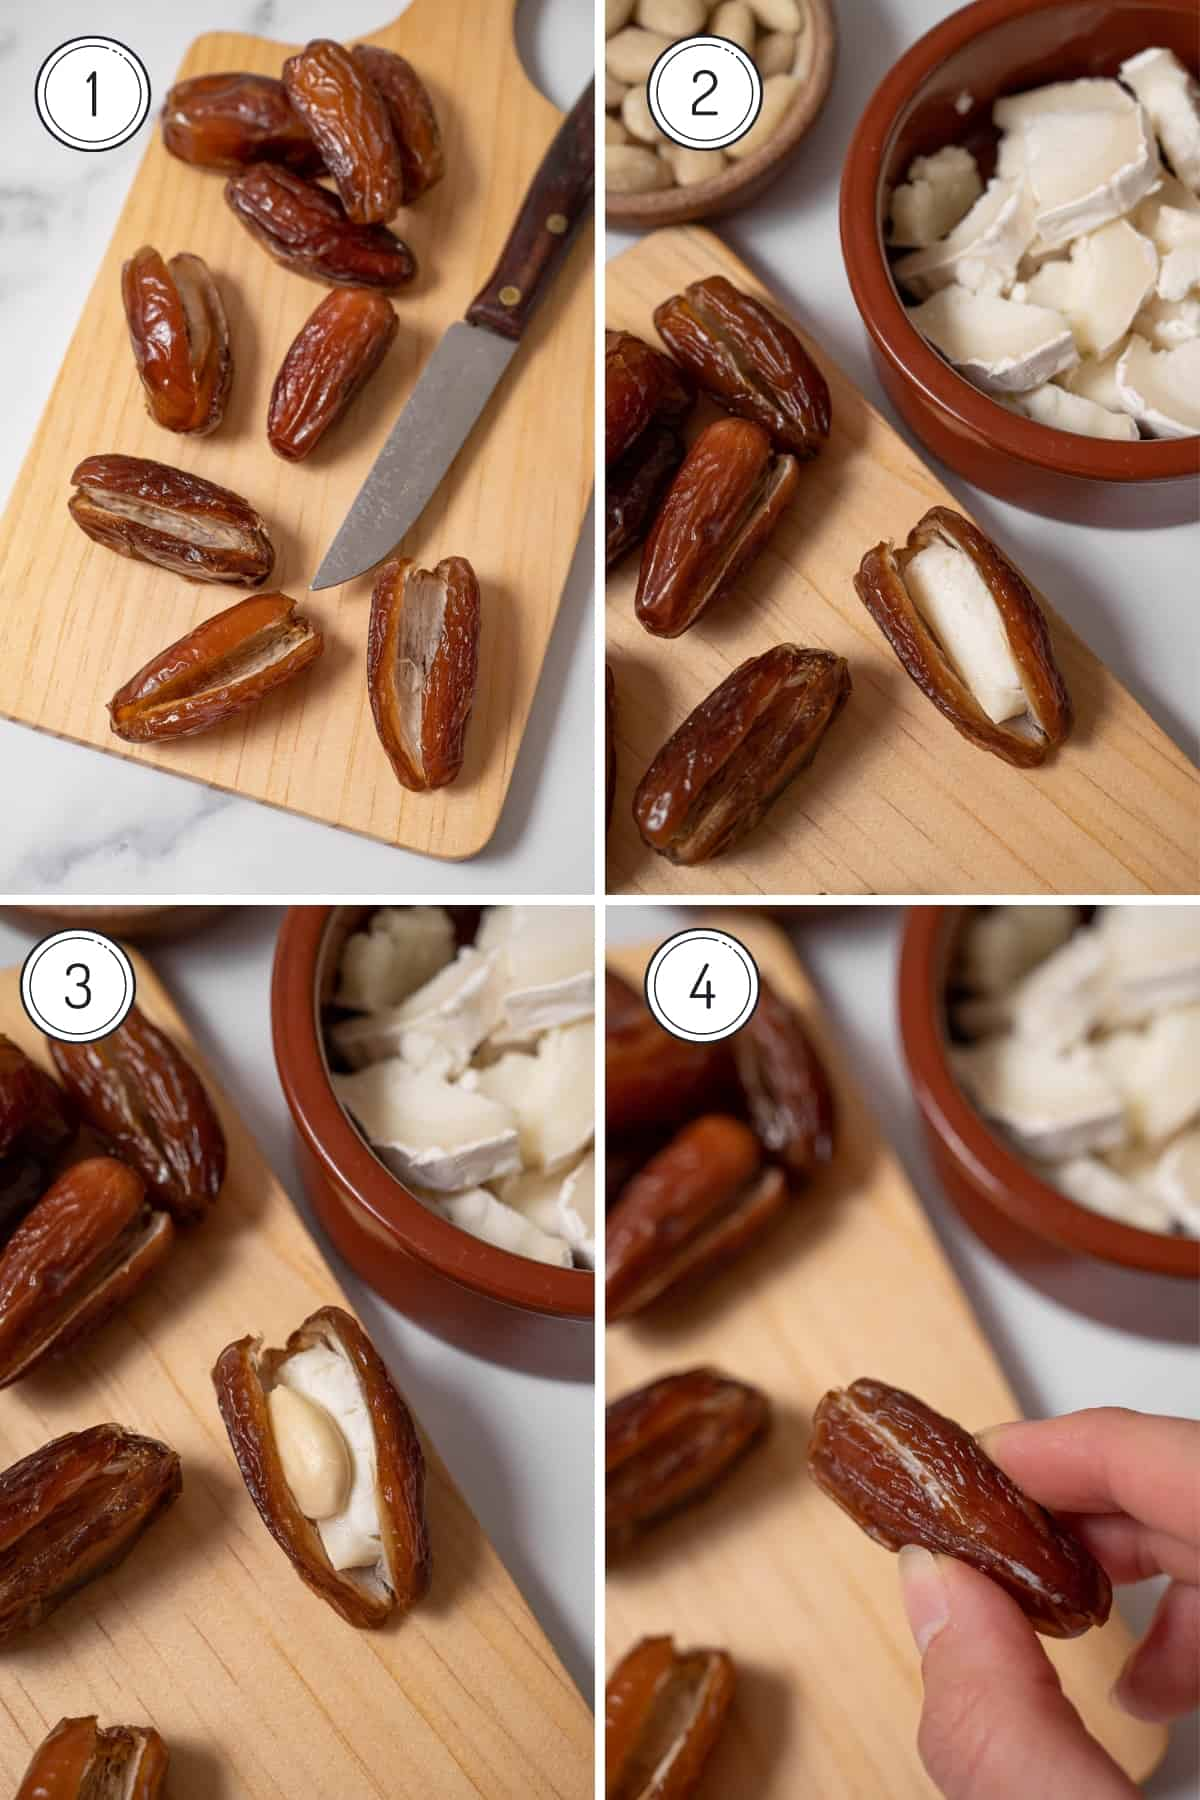 Bacon wrapped dates recipe steps 1-4 in a grid. Cutting, stuffing, and closing the dates.